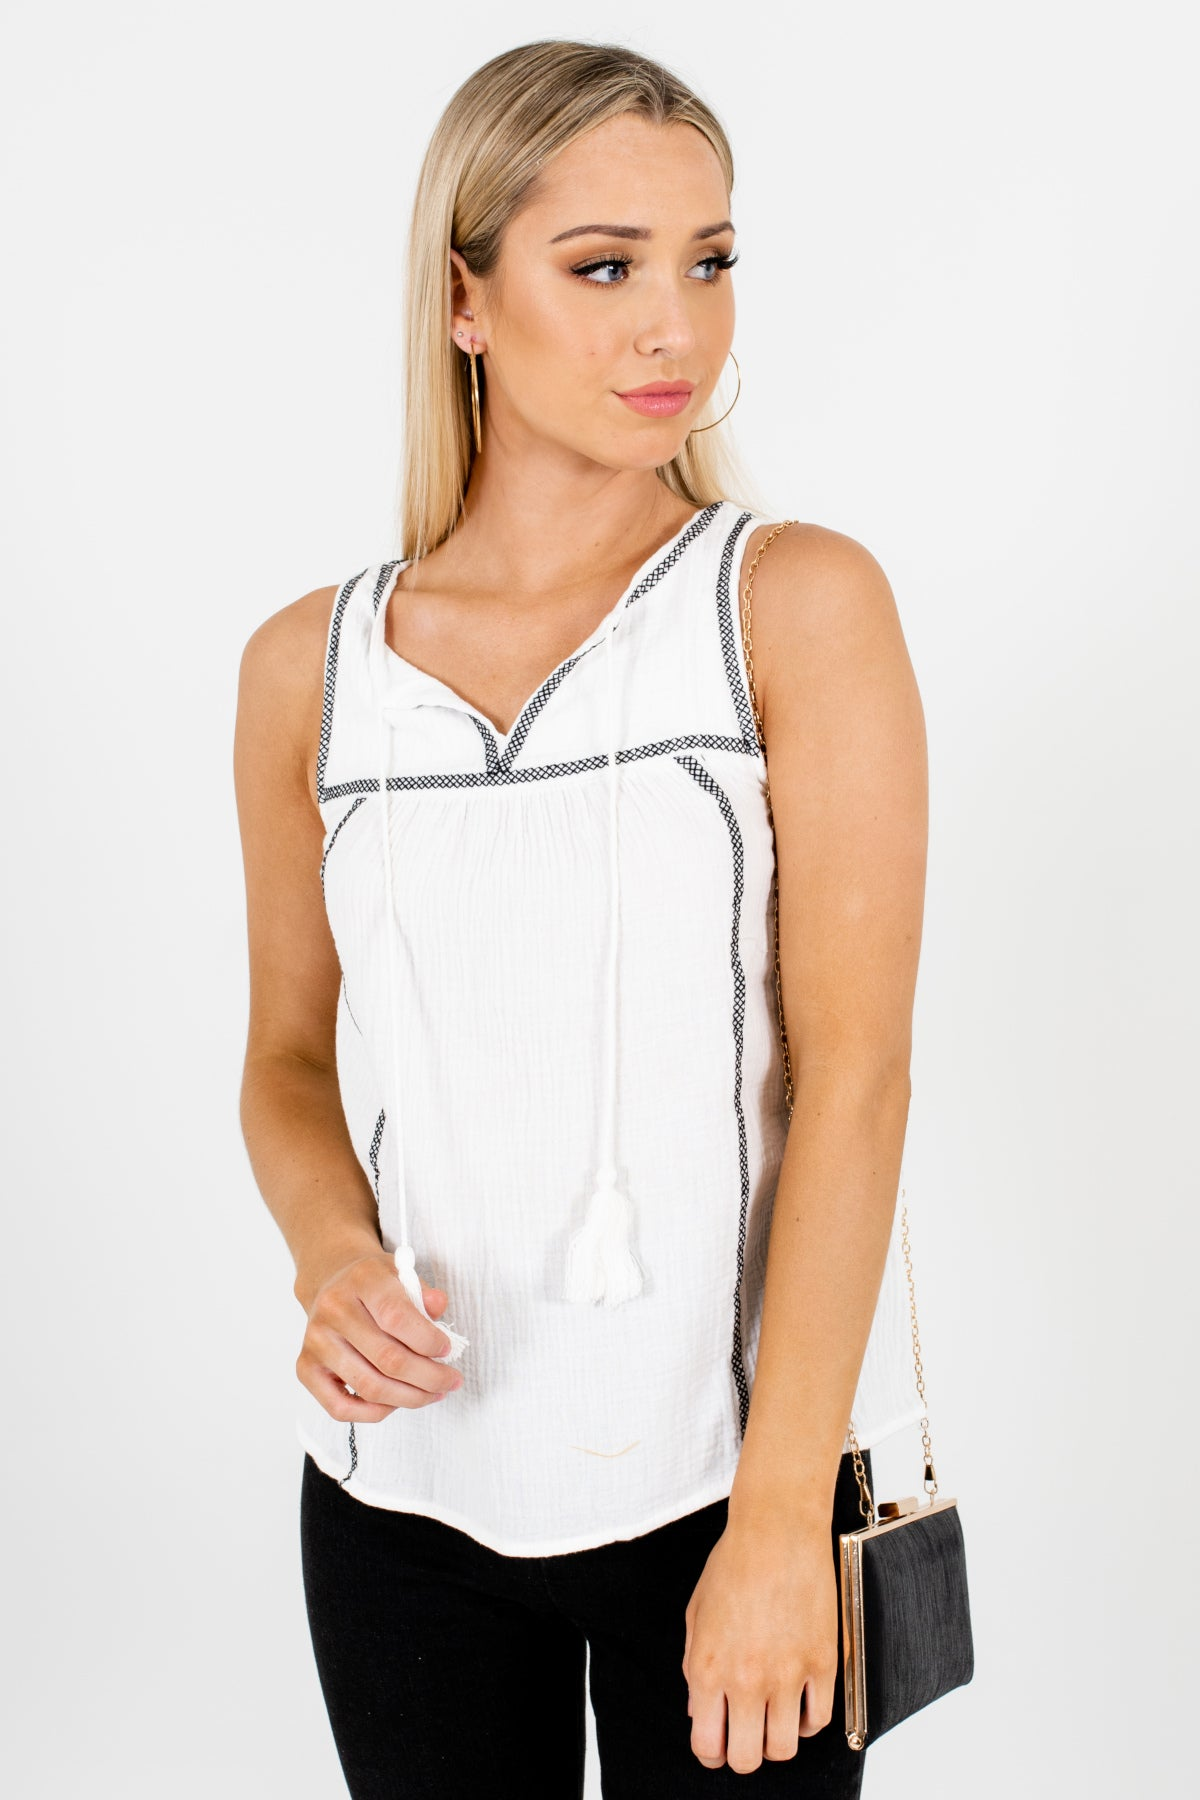 White Black Stitched Cotton Tank Tops Affordable Online Boutique